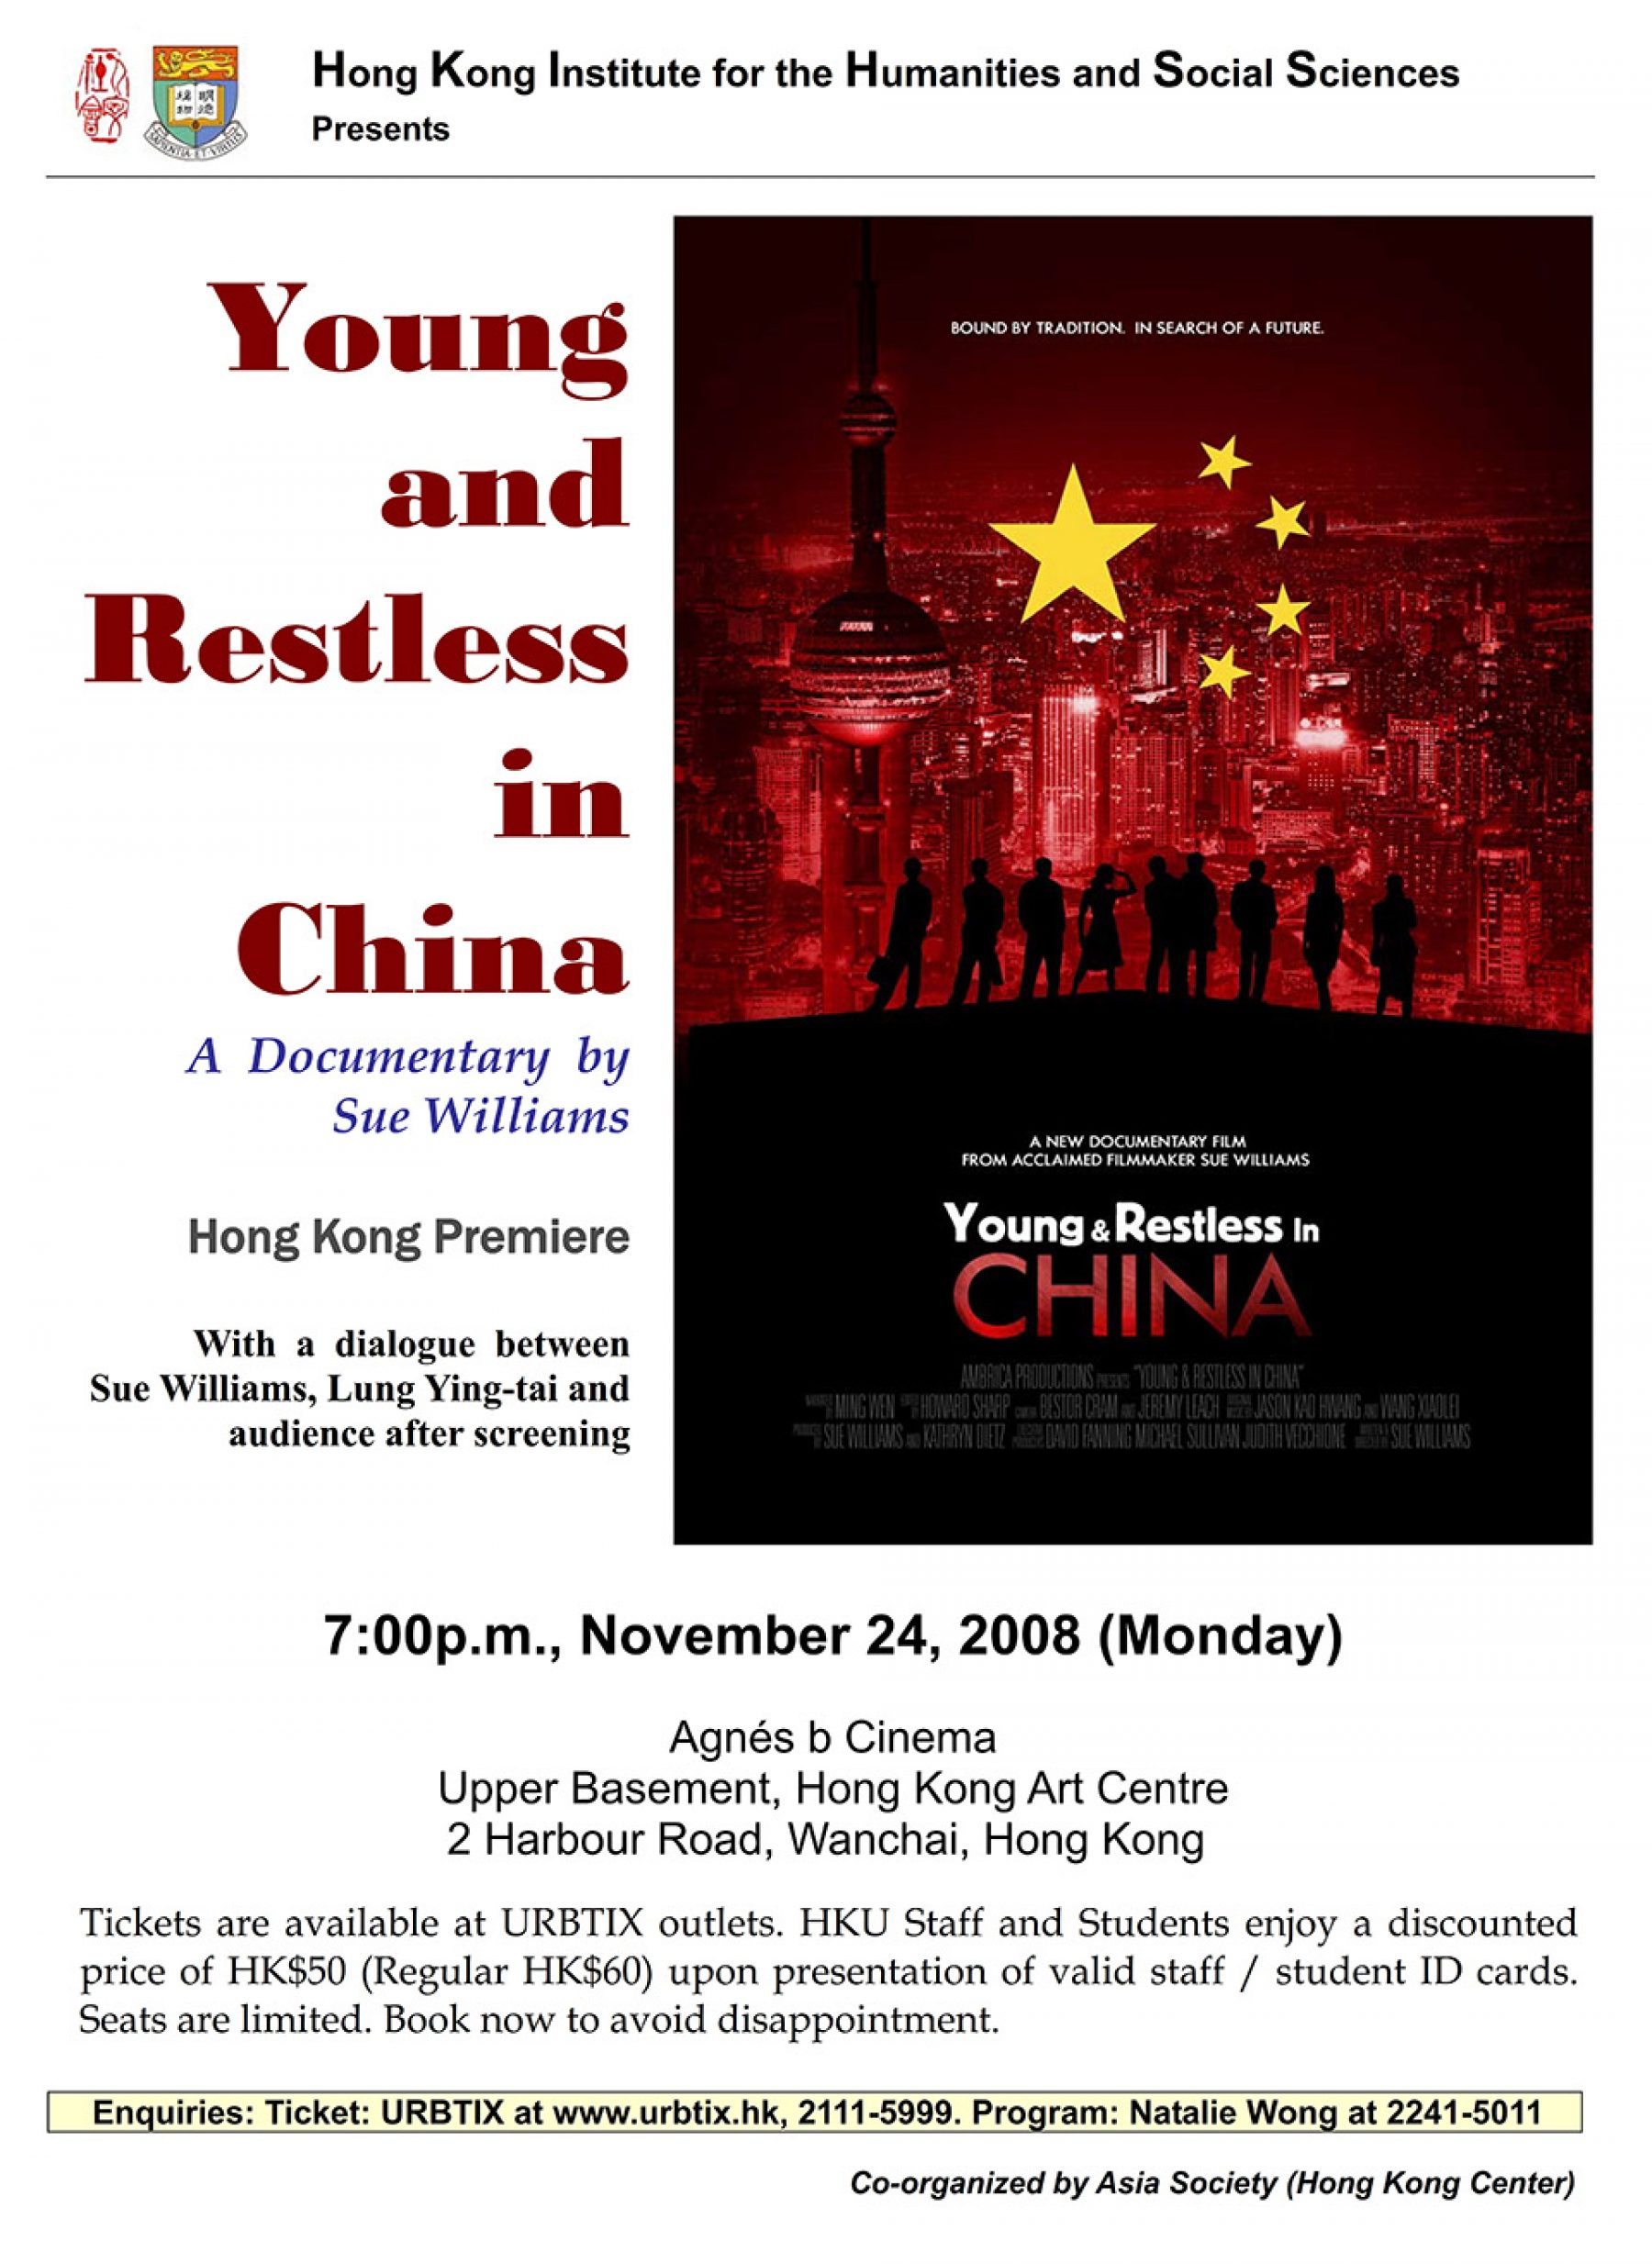 A Documentary by Sue Williams: Young and Restless in China